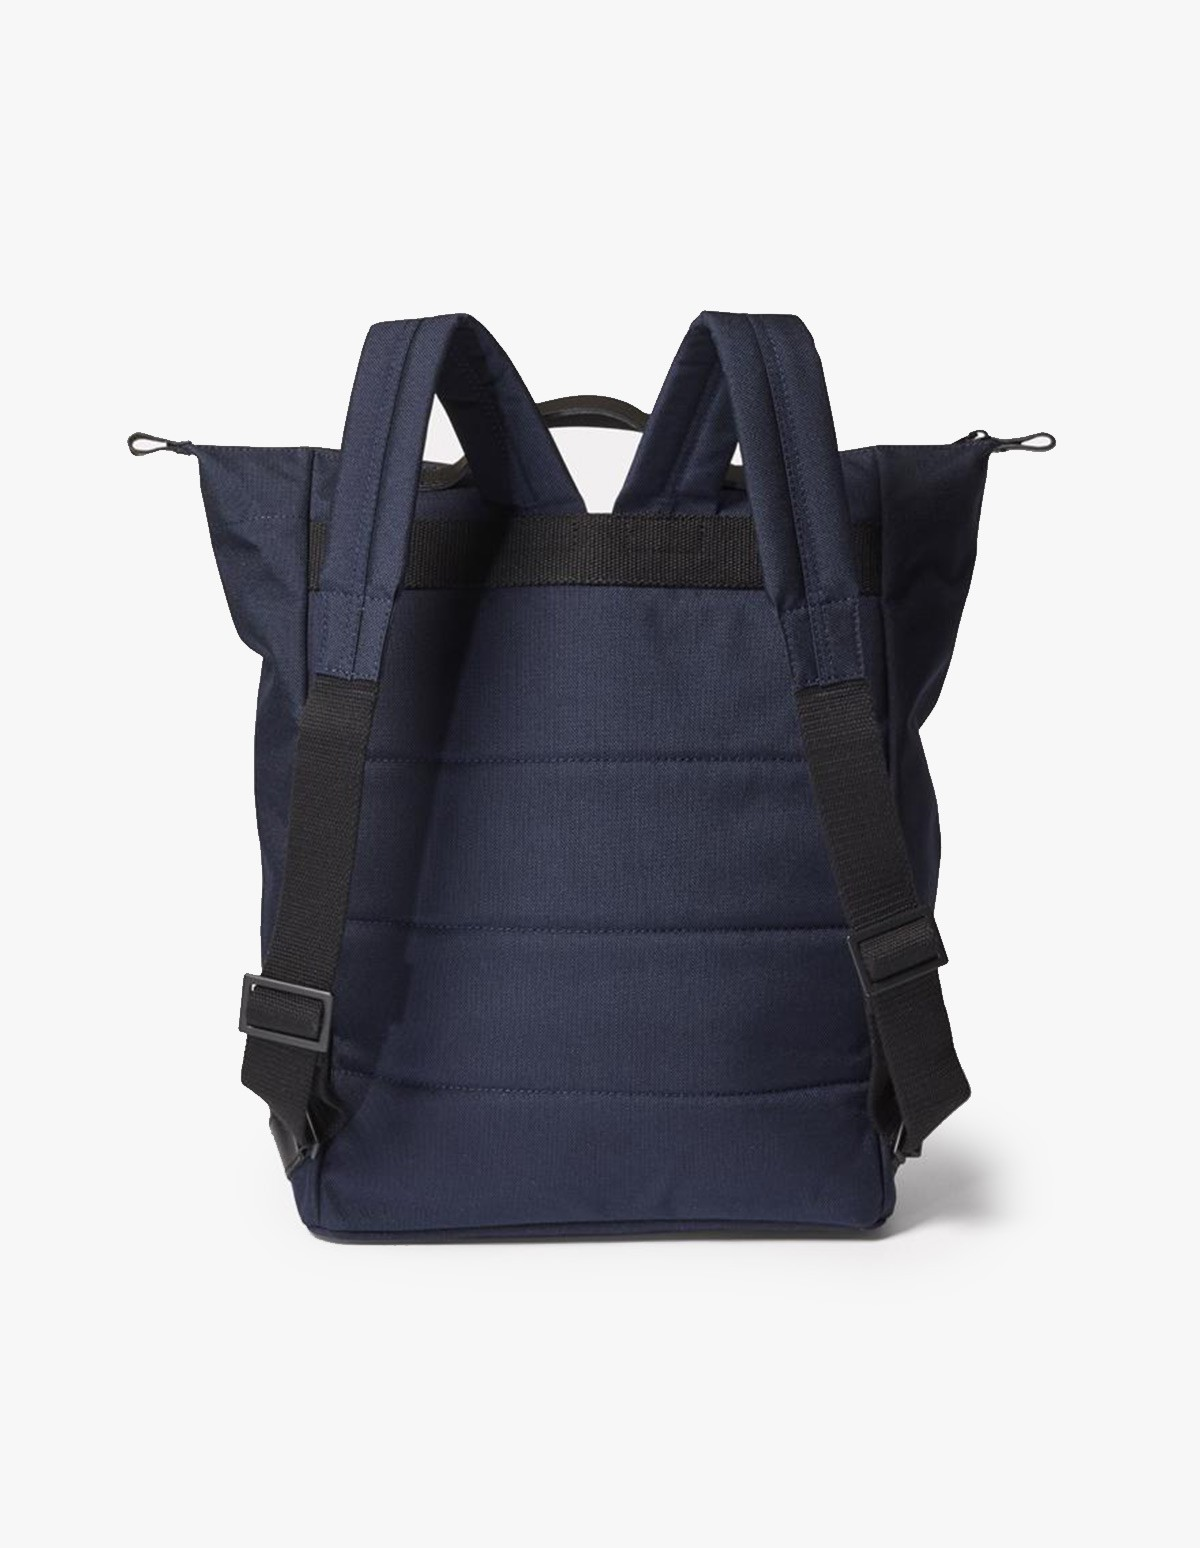 Ally Capellino Hoy Travel Backpack in Navy